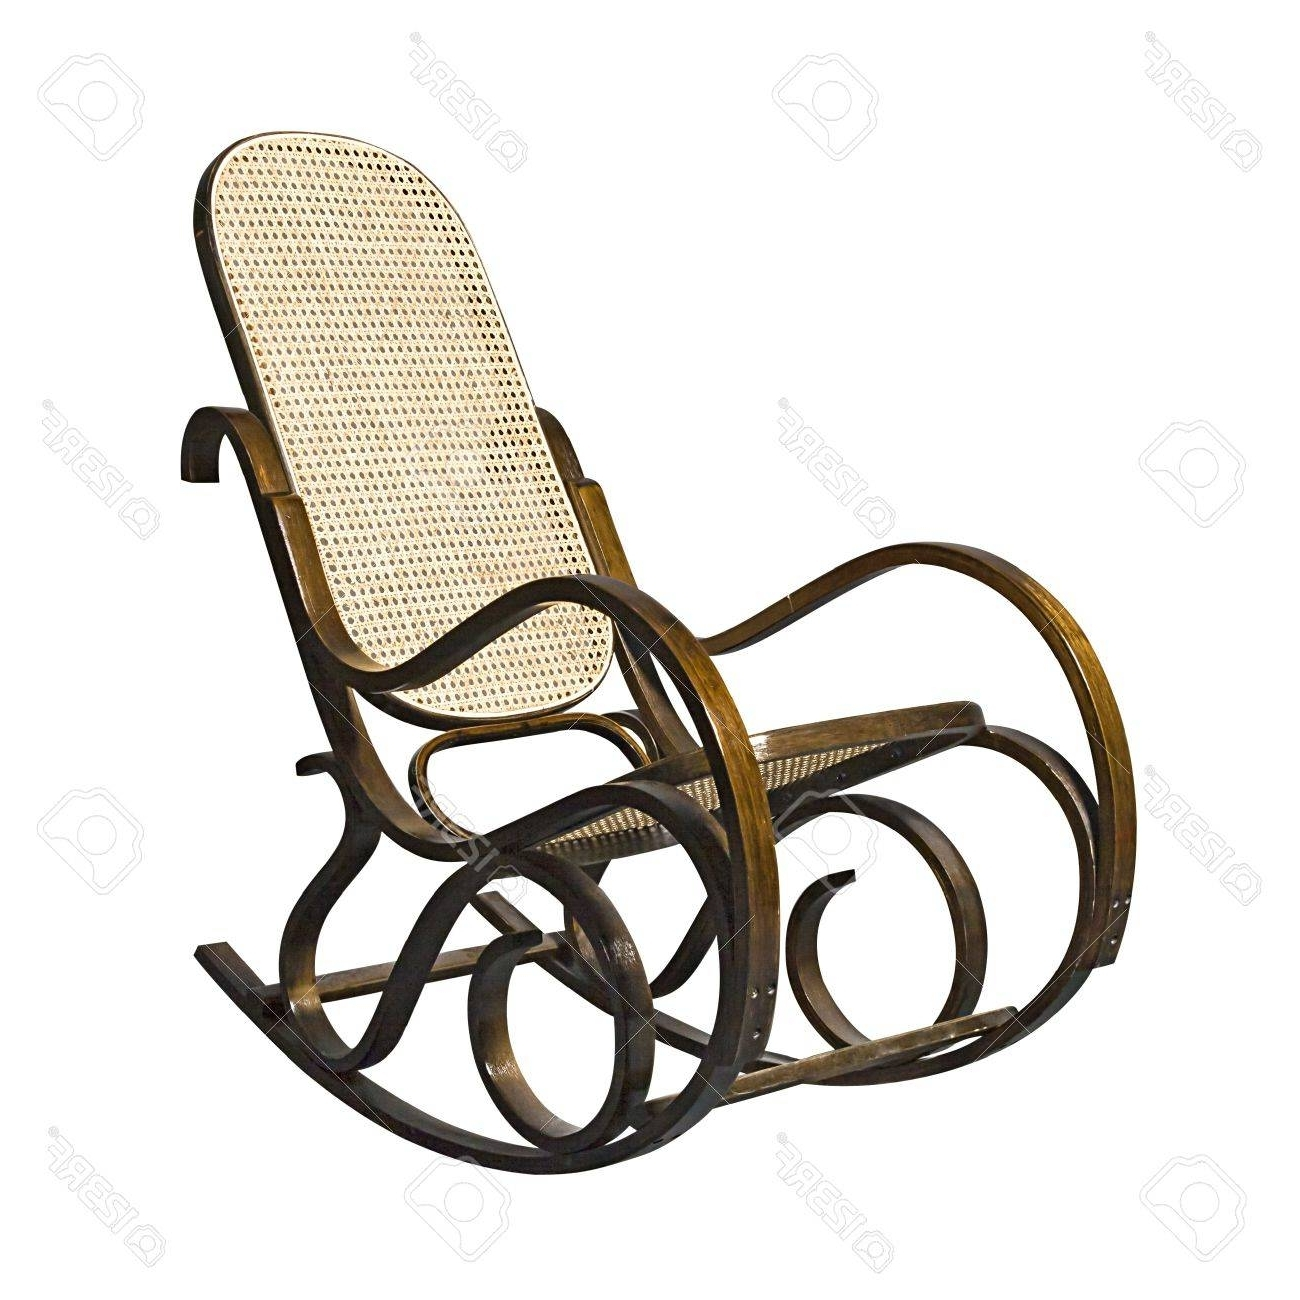 2019 Old Fashioned Rocking Chair Isolated Over White Stock Photo, Picture Regarding Old Fashioned Rocking Chairs (View 15 of 20)